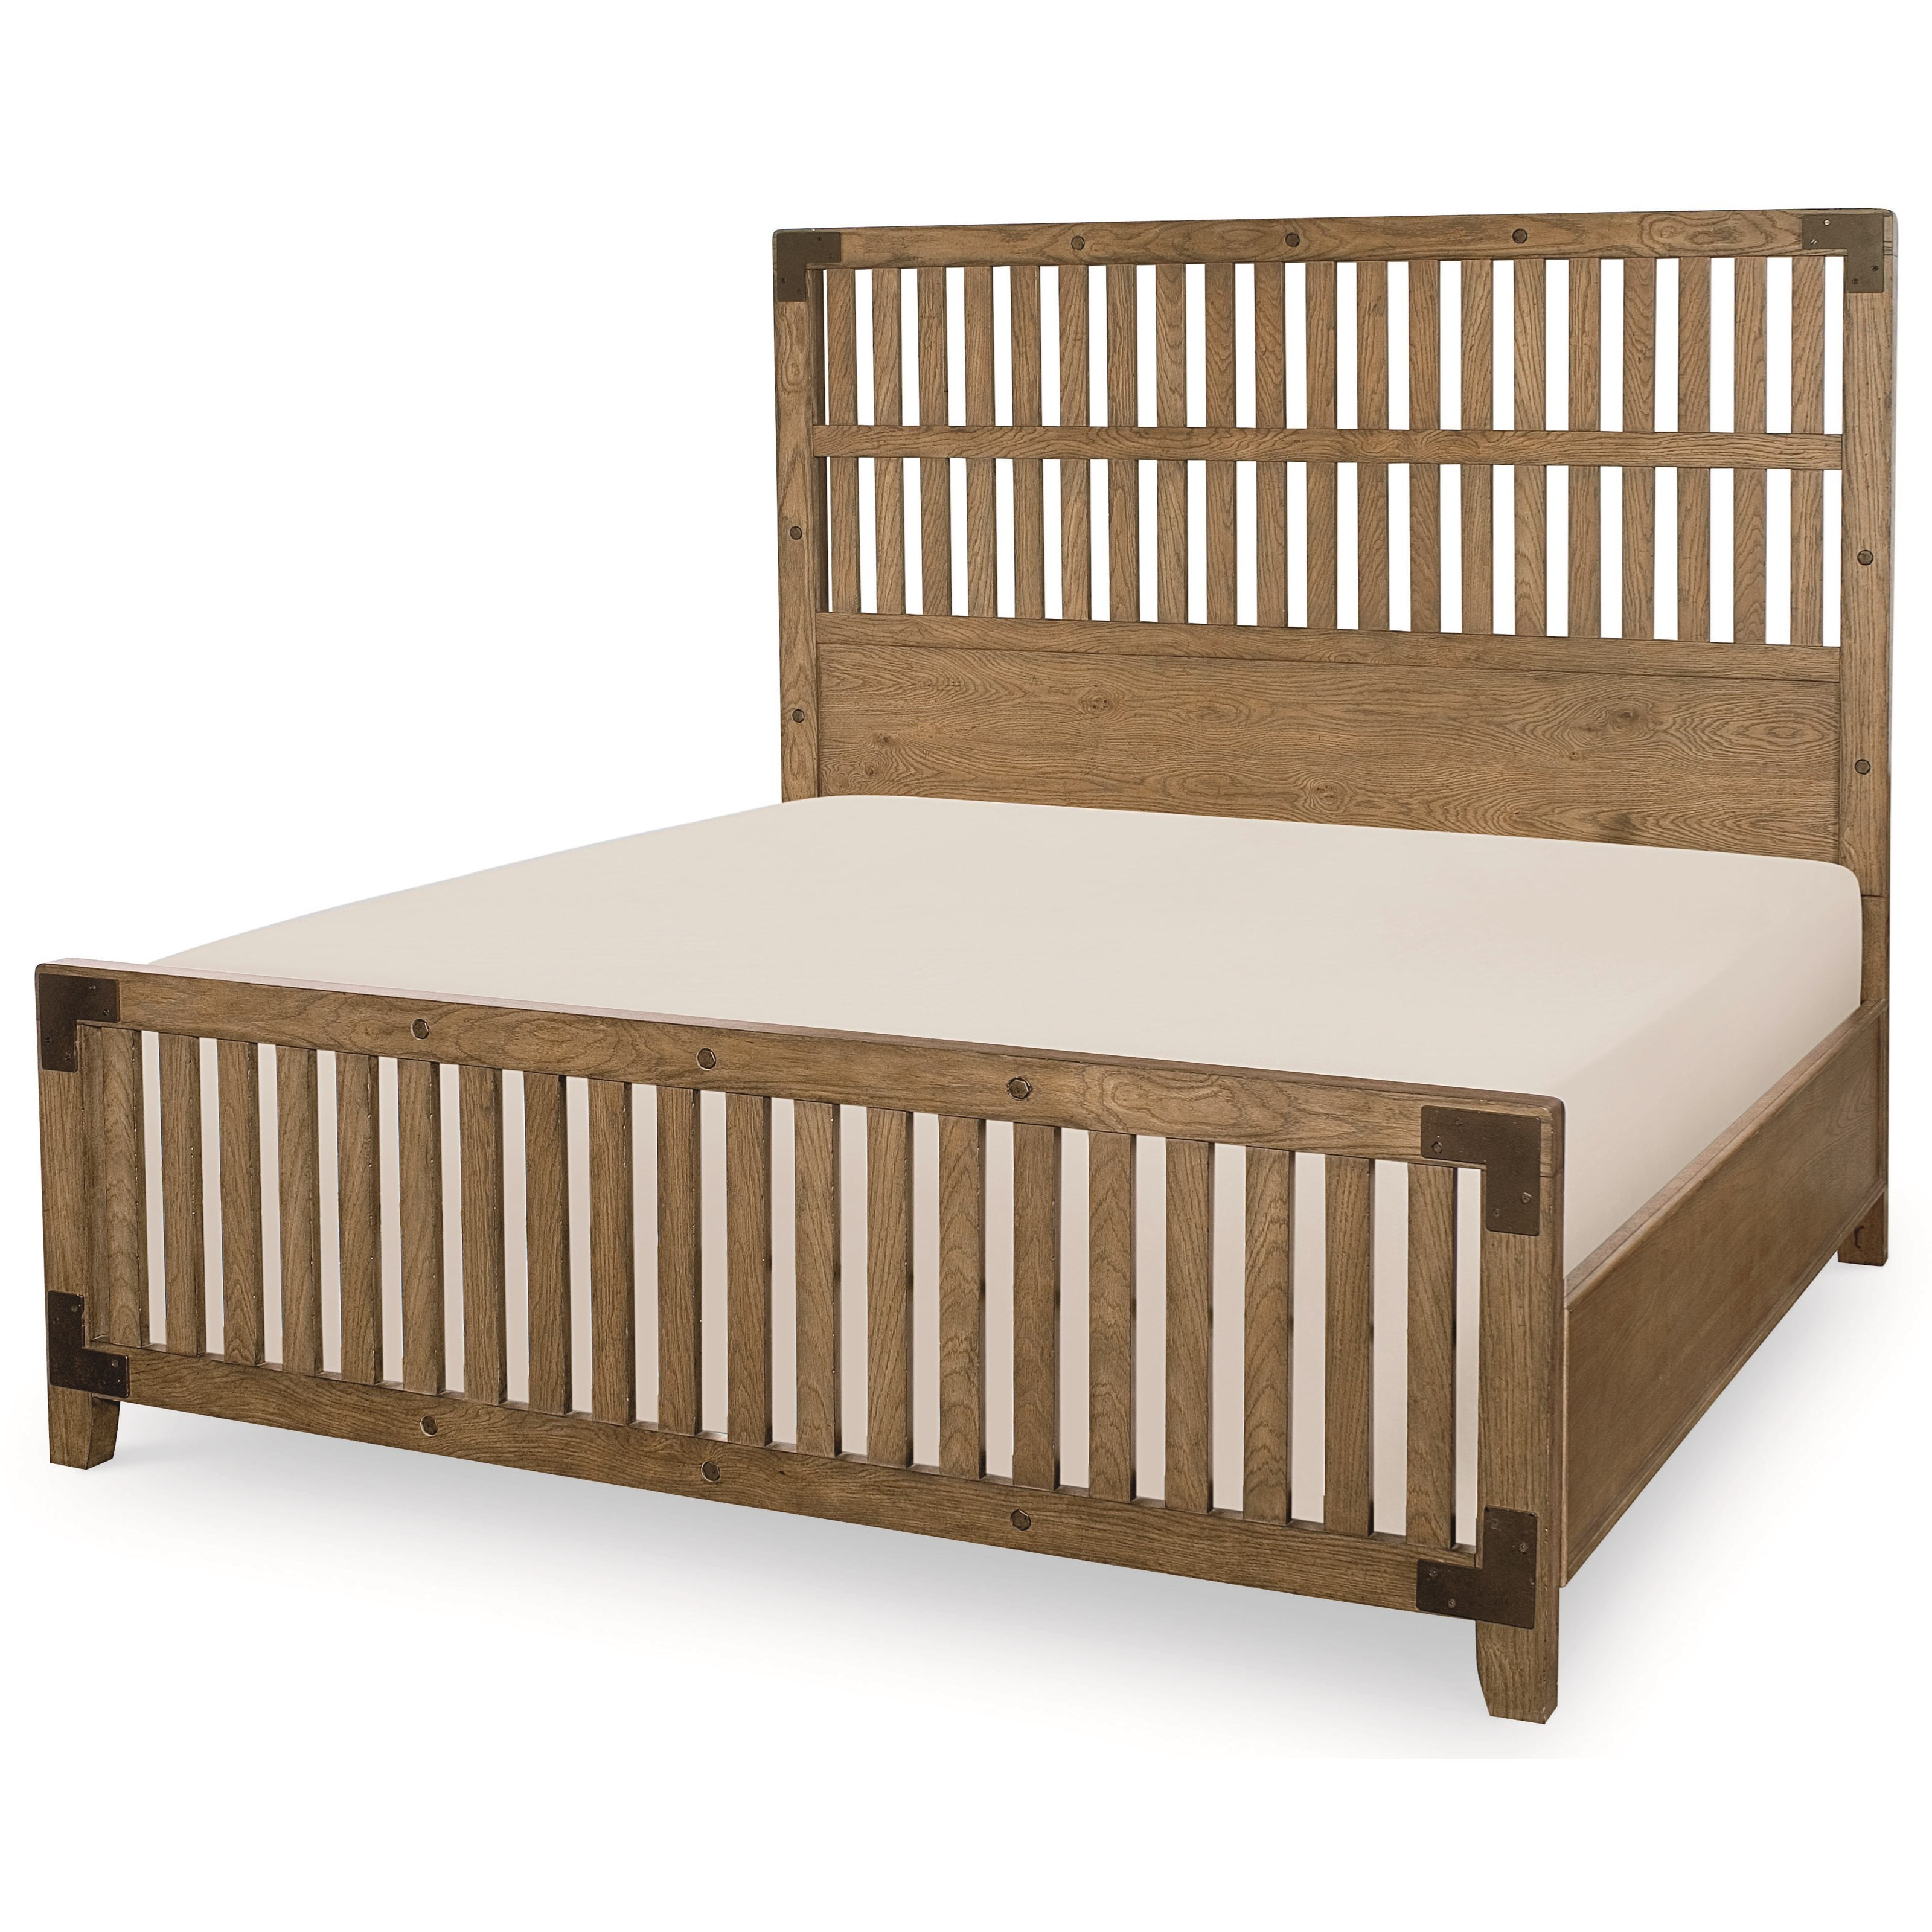 Legacy Classic Metalworks Queen Complete Wood Gate Bed - Item Number: 5610-4205K